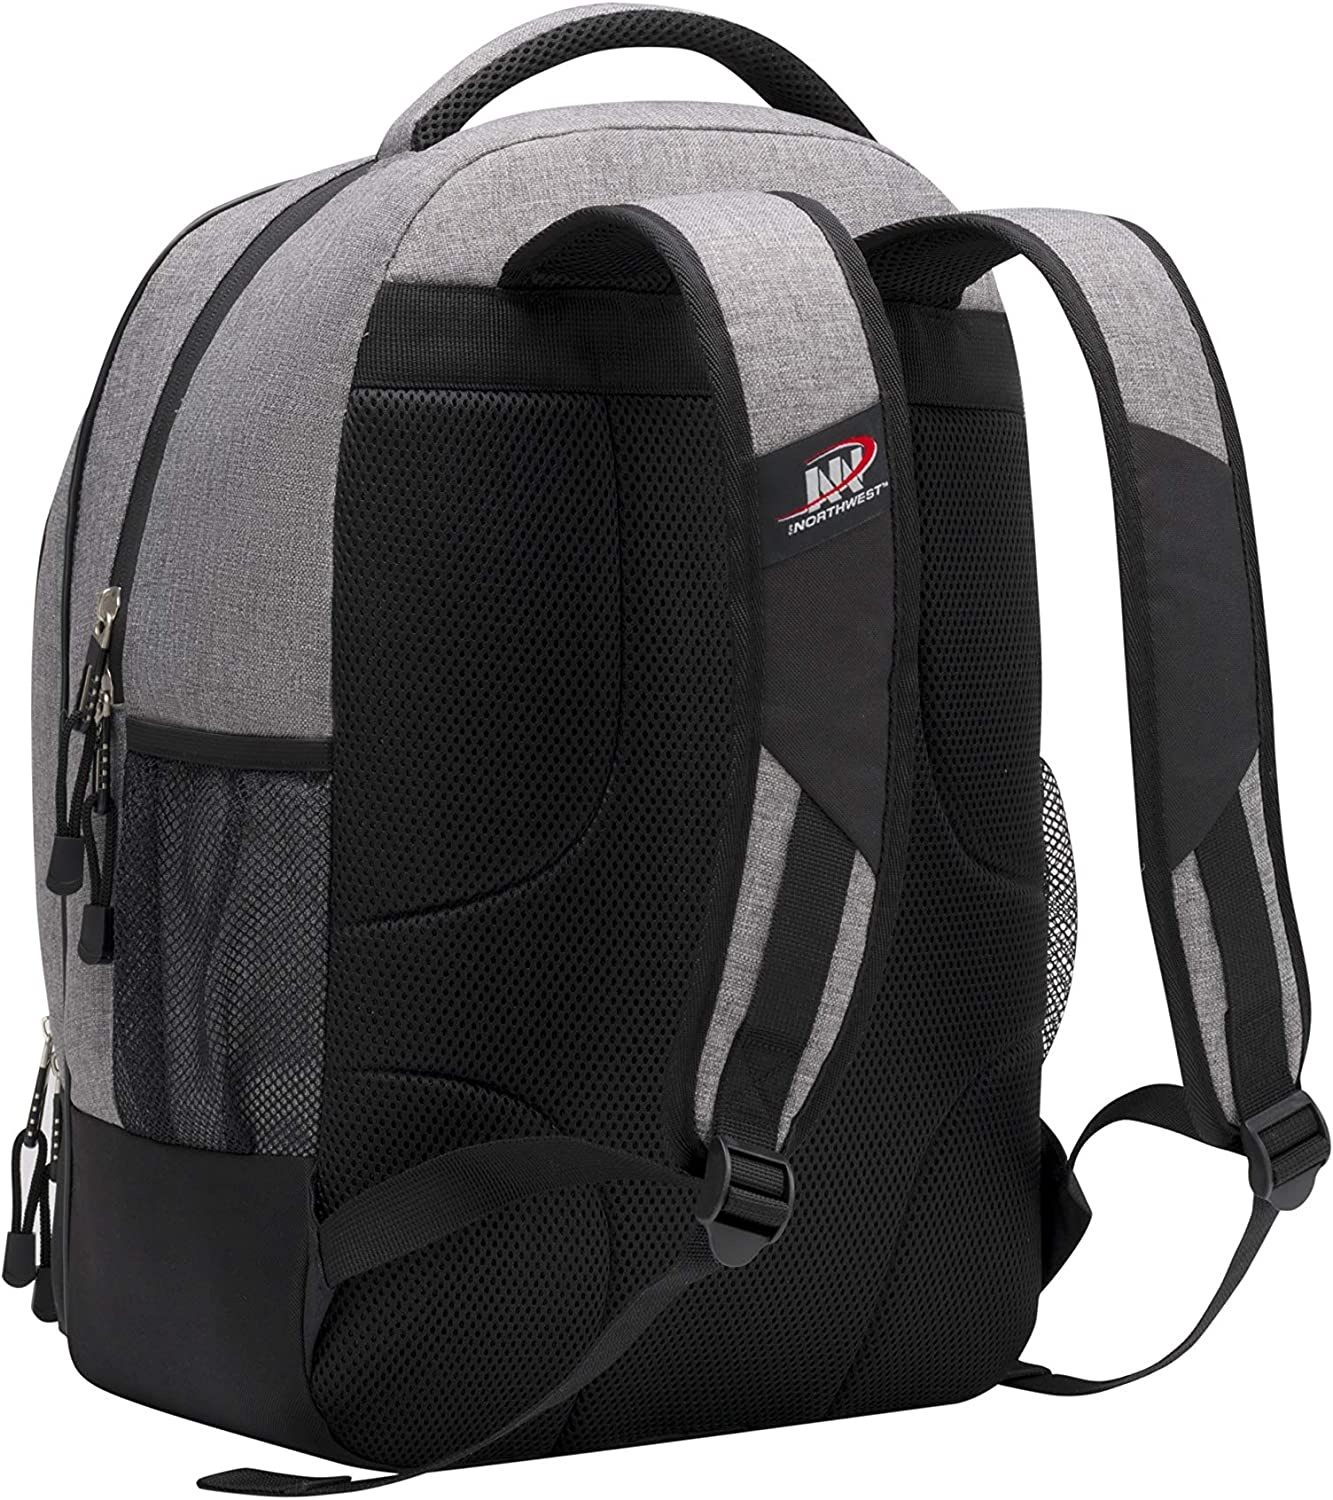 The Northwest Company Officially Licensed NCAA Razor Backpack Multi Color 19